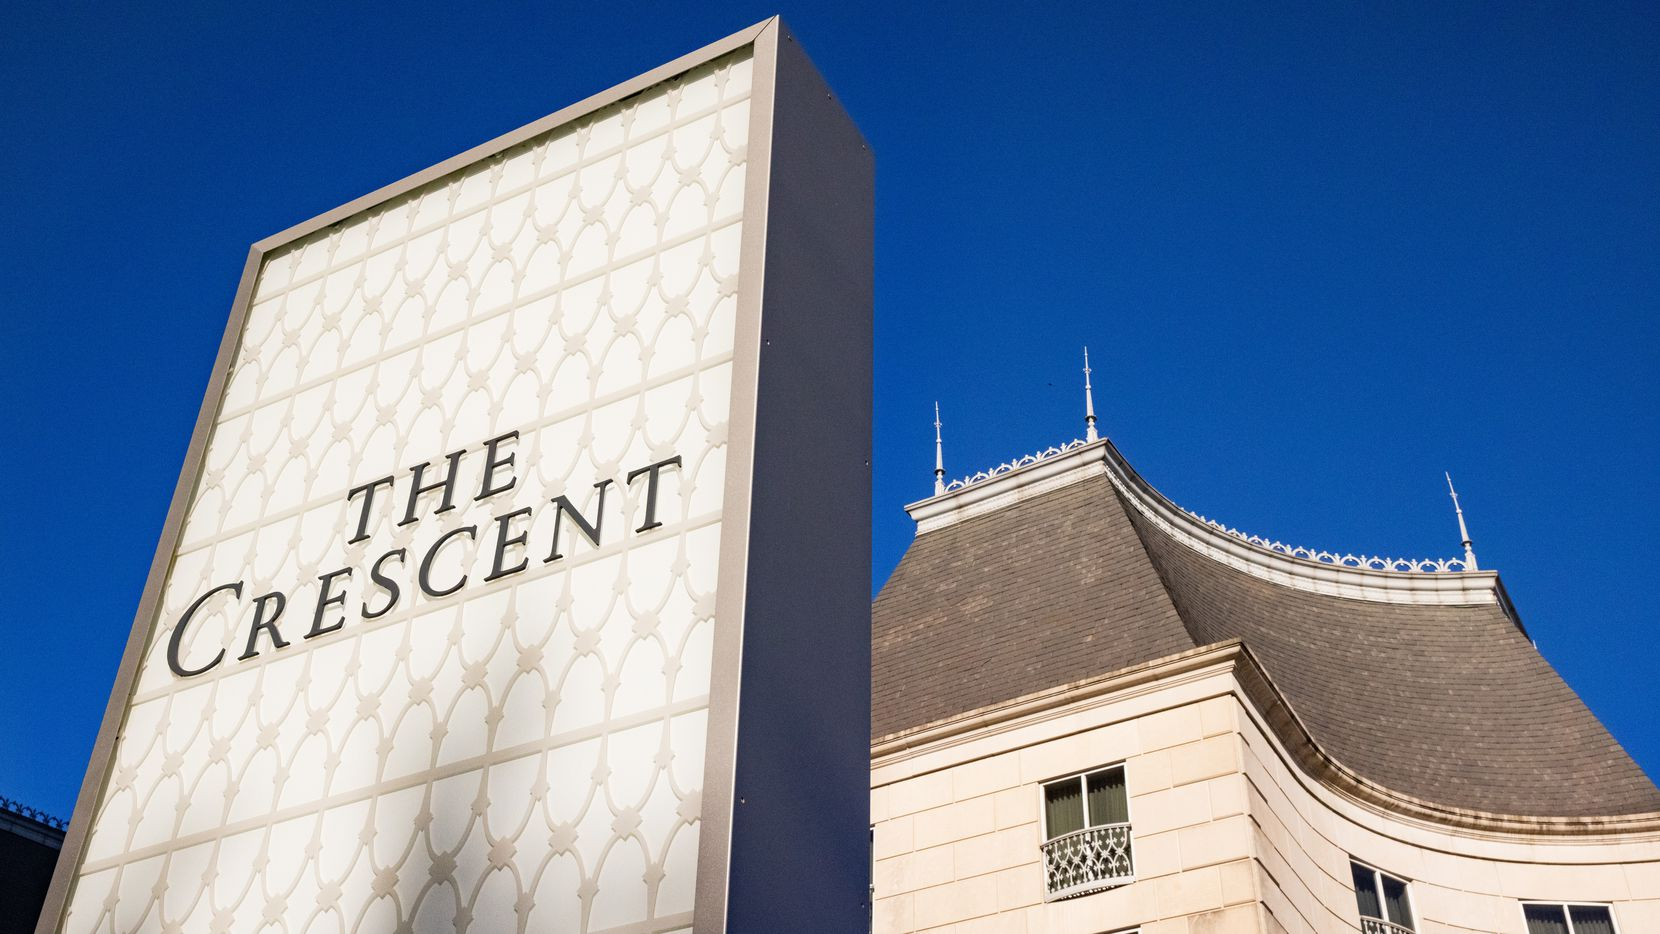 The Crescent office, hotel and retail project in Uptown Dallas is home to a large number of financial firms.